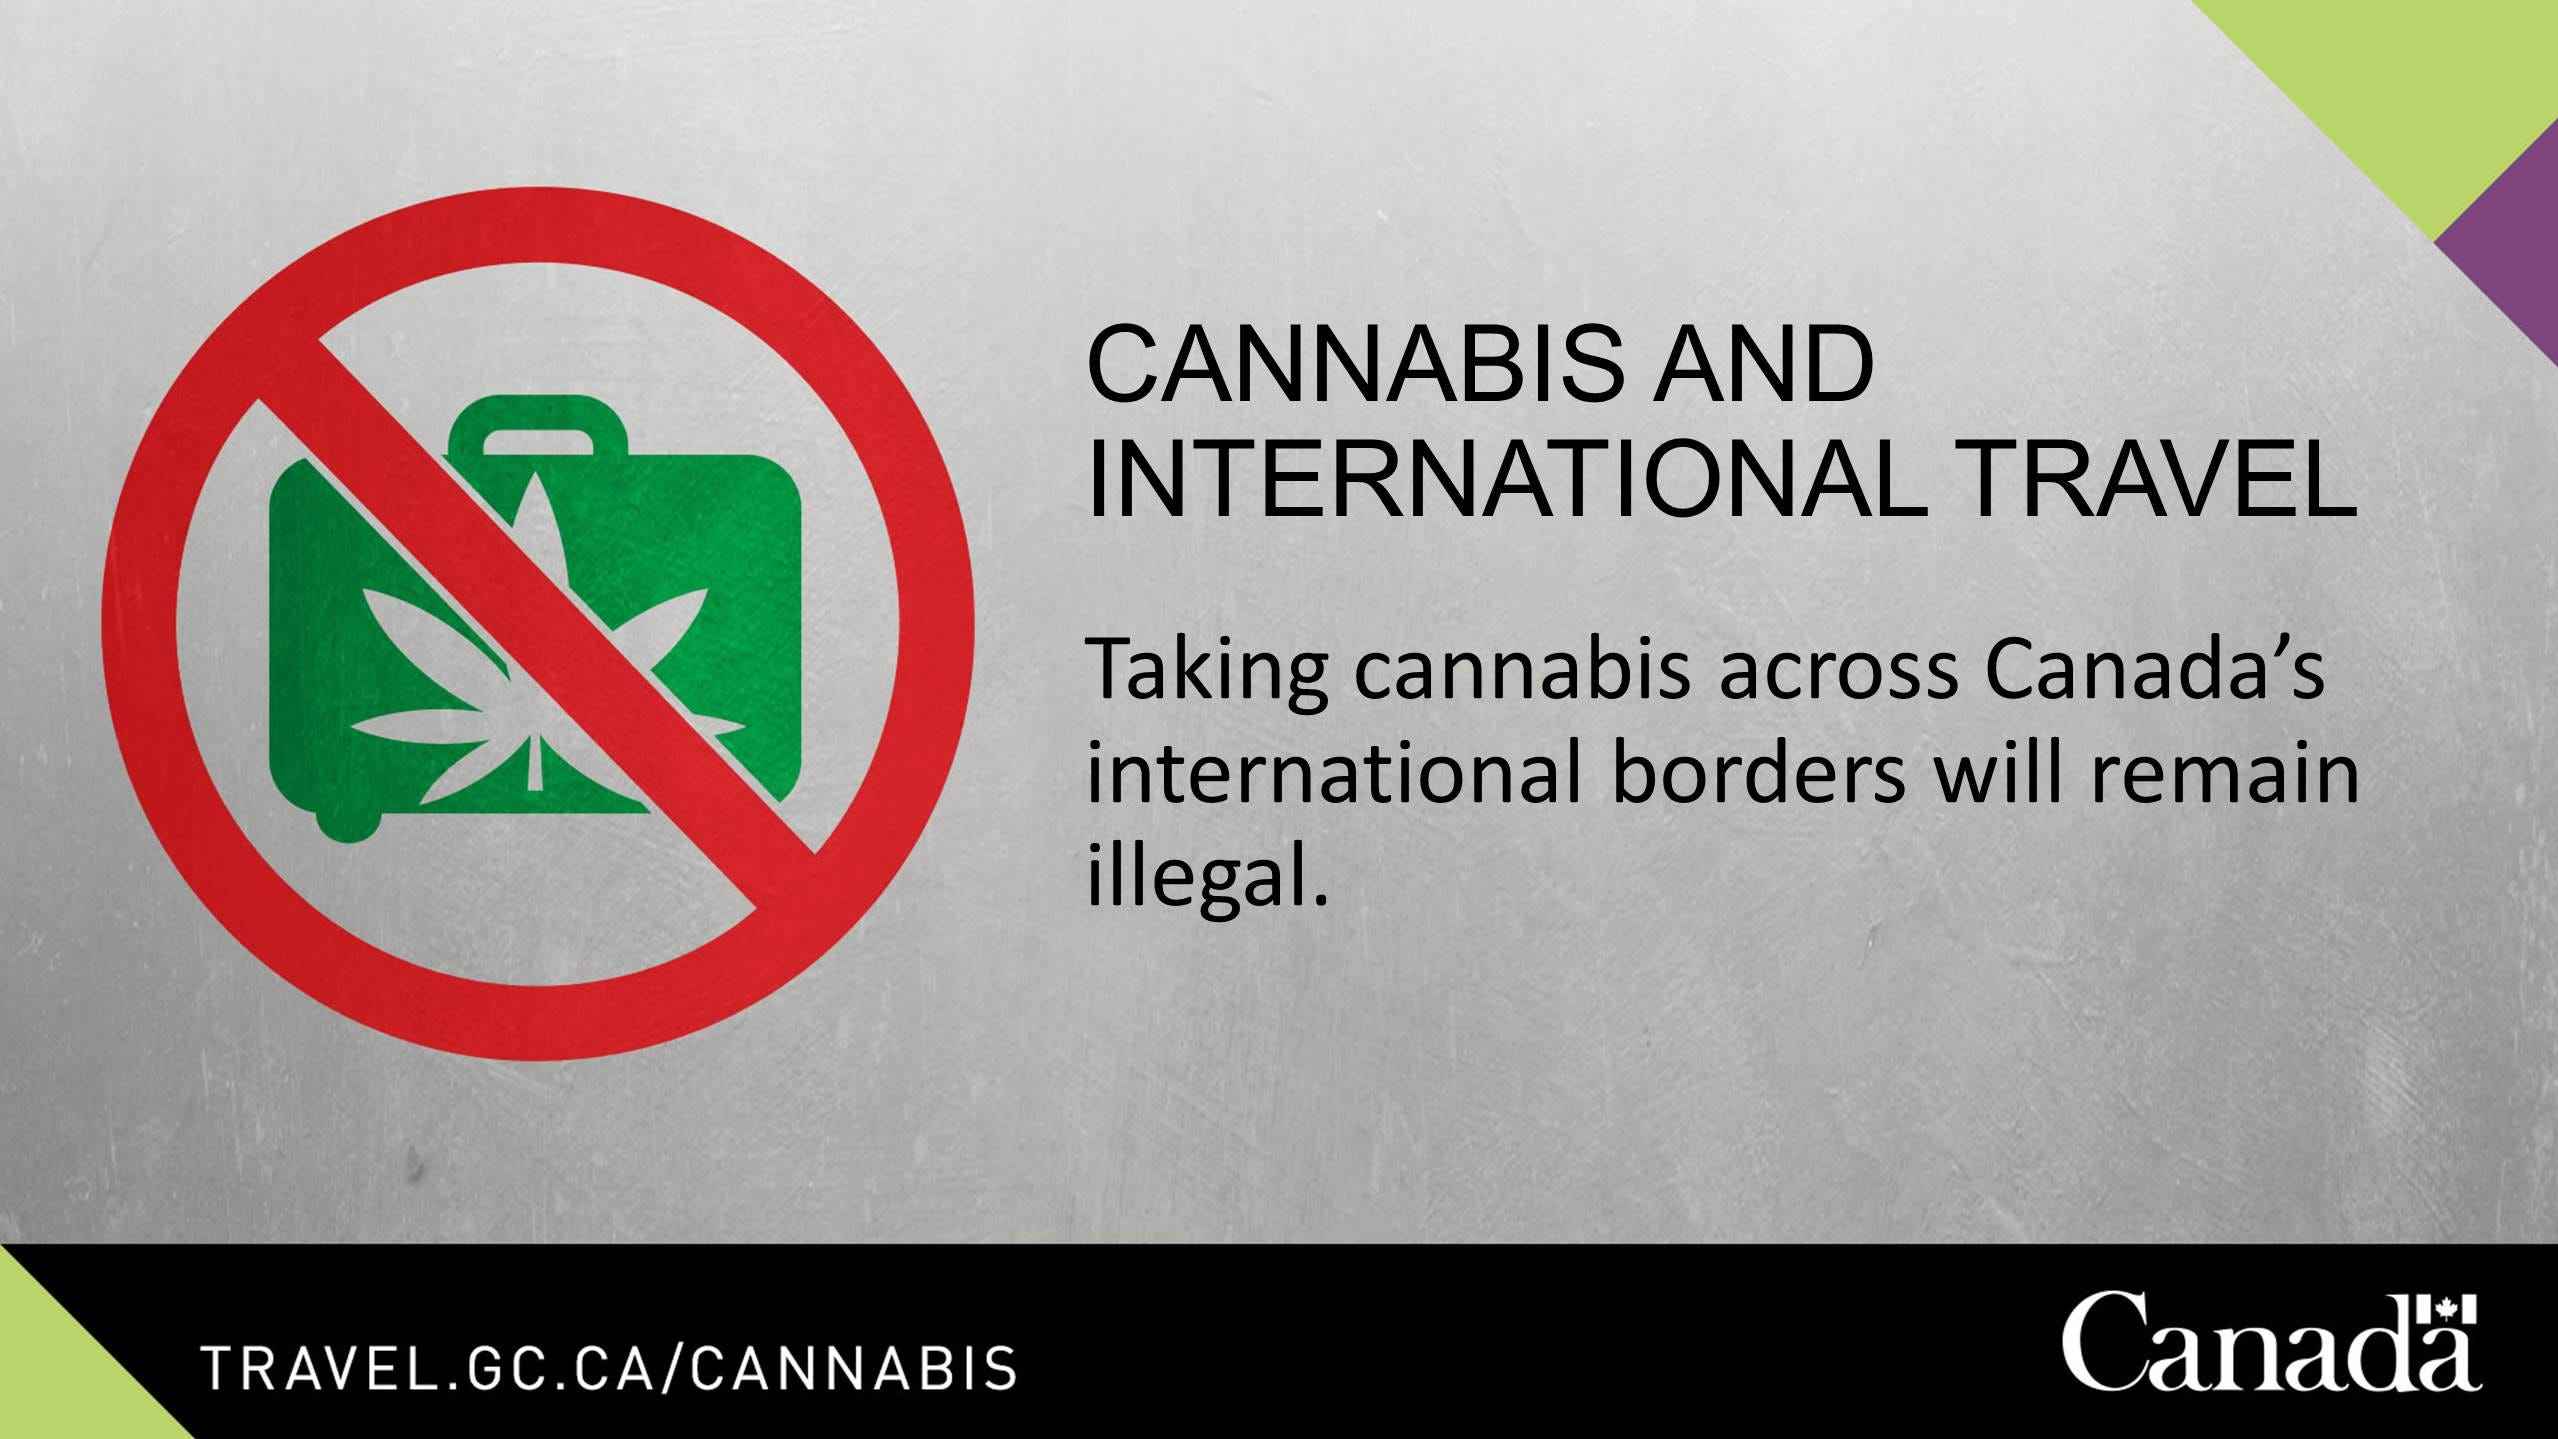 Canadians worry legal marijuana could get them banned from crossing into the U.S.